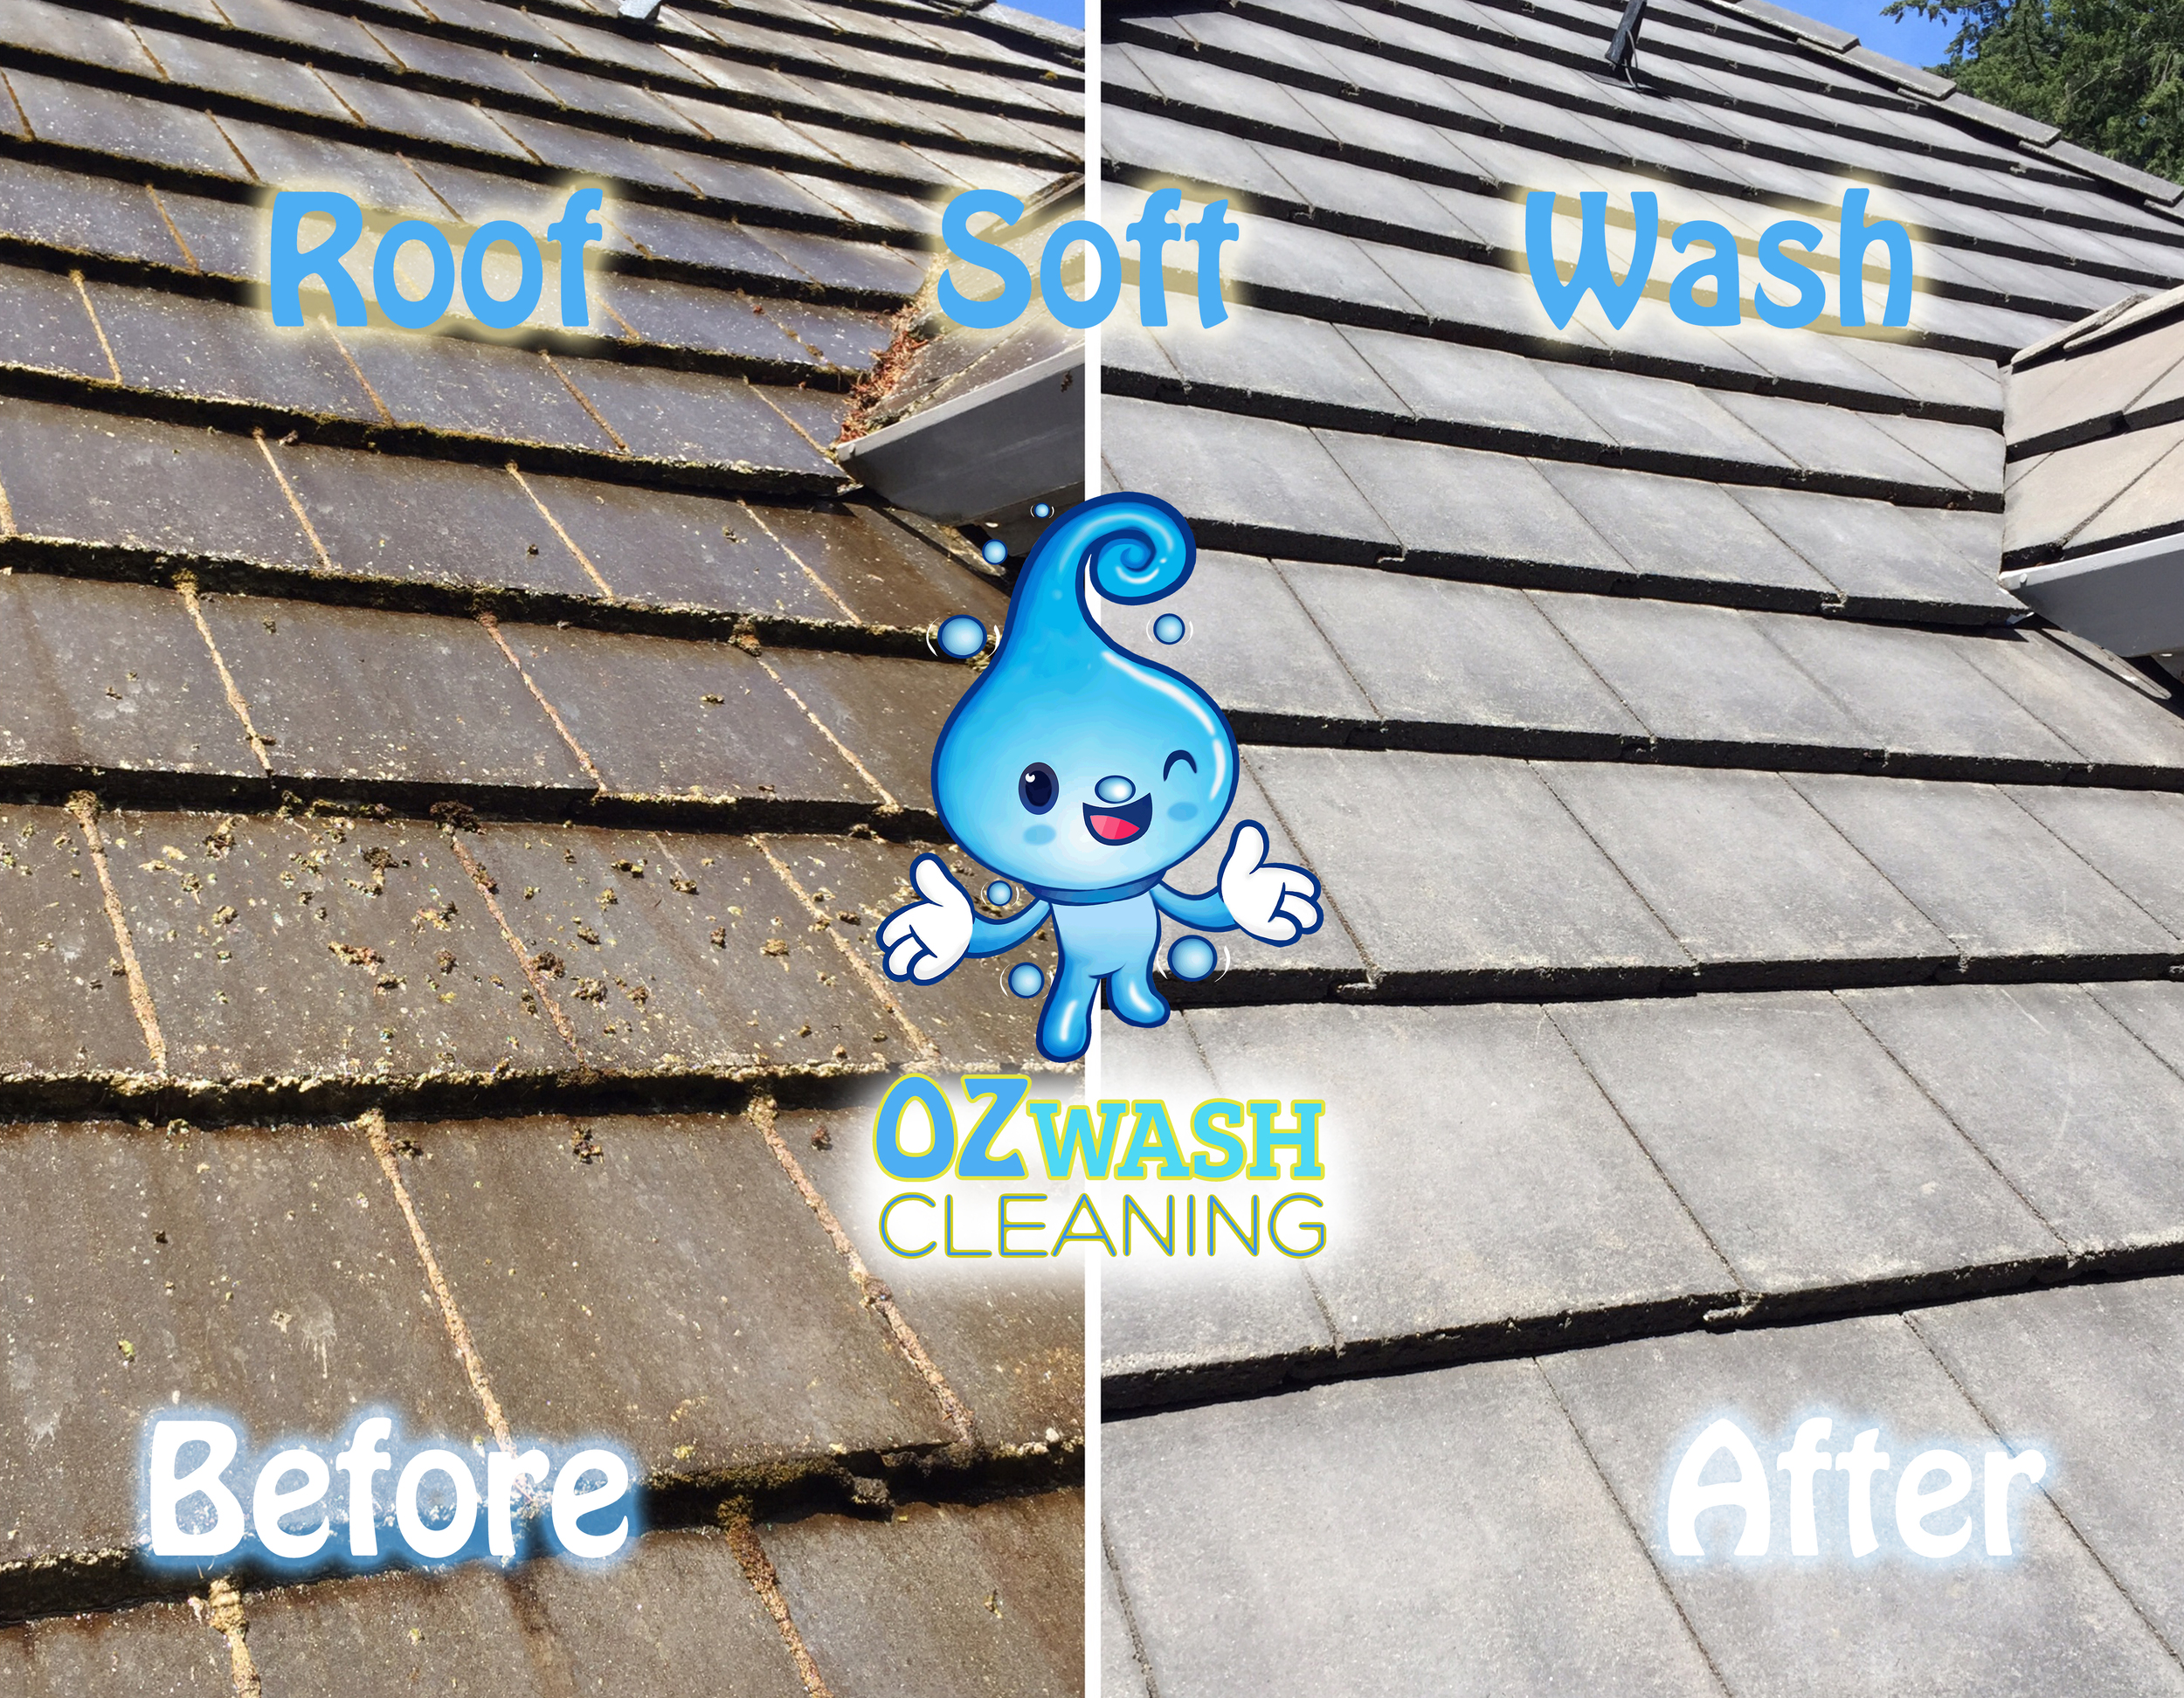 roofsoftwash15.jpg